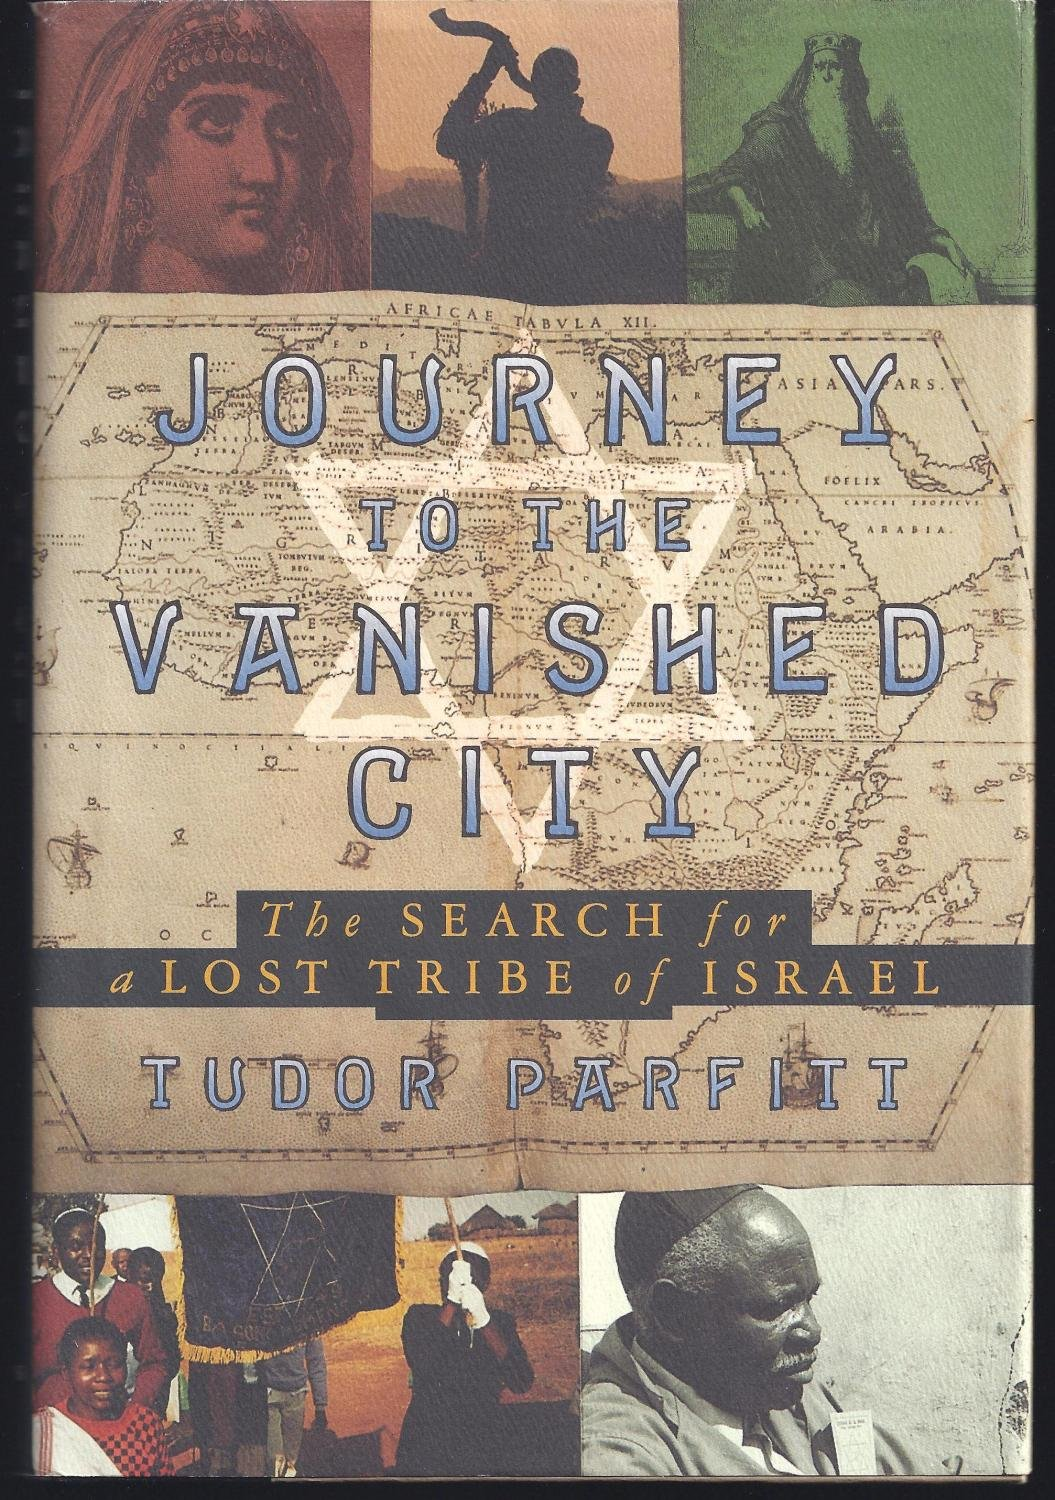 Journey to the Vanished City: The Search for the Lost Tribe of Israel